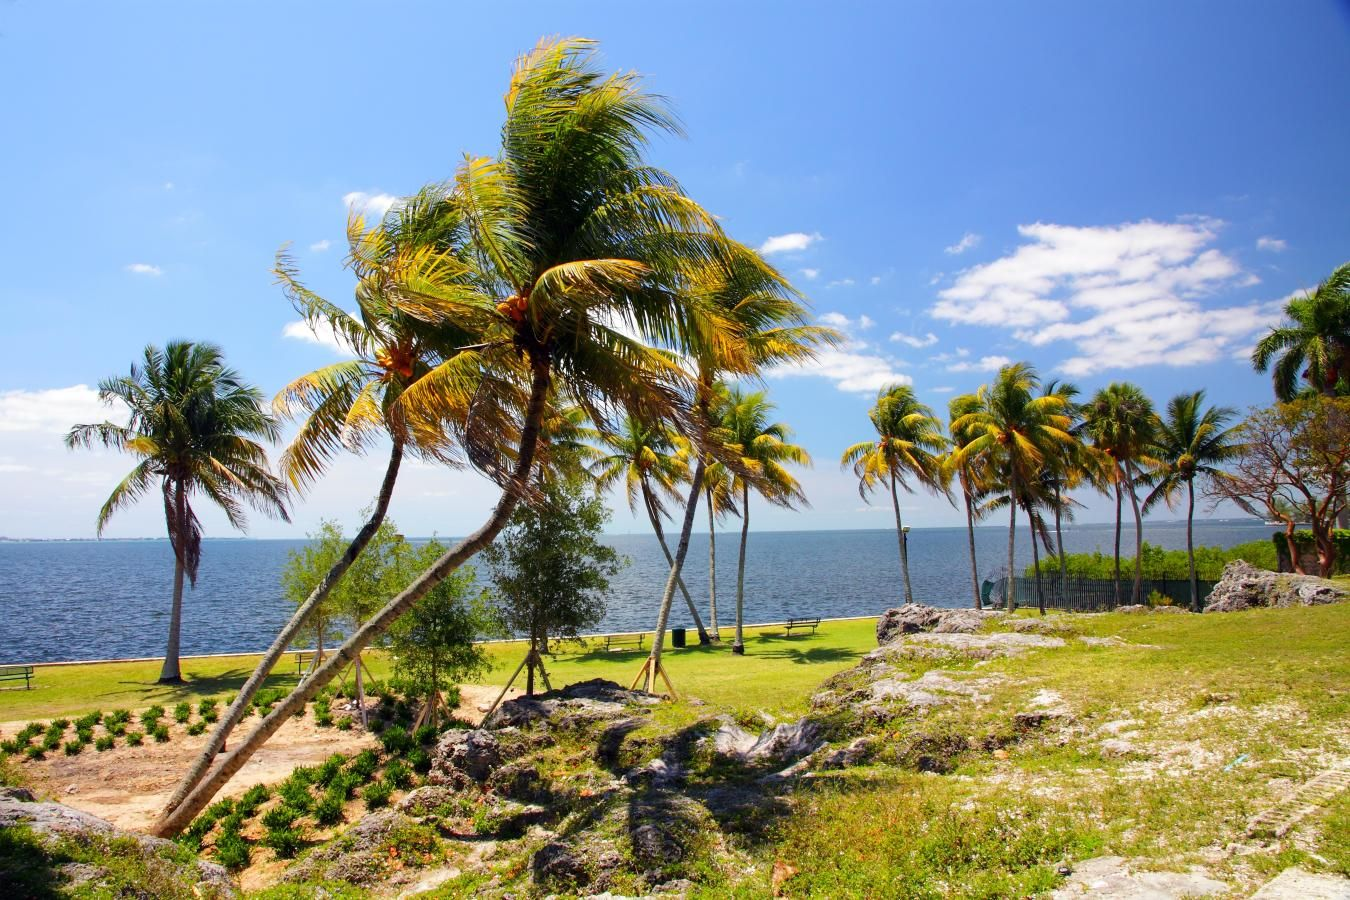 A view of Biscayne Bay at Alice C. Wainwright Park